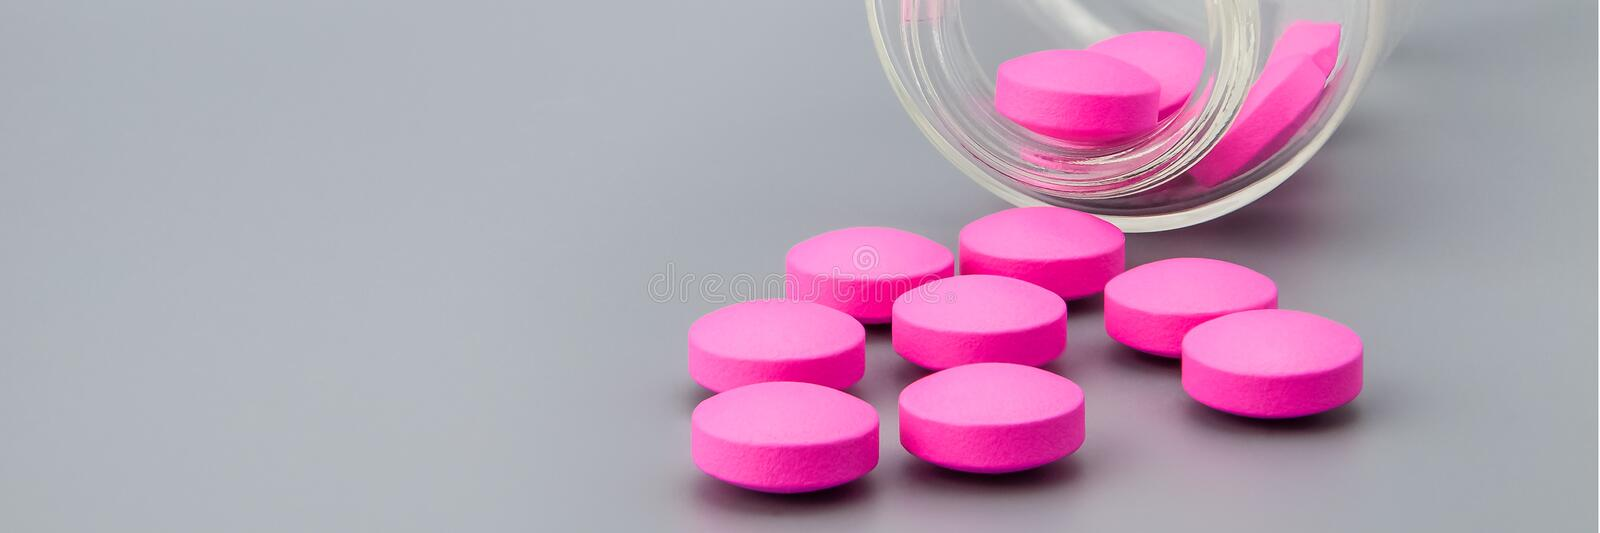 Bright large pink pills are poured from a glass jar on a gray background. stock photography